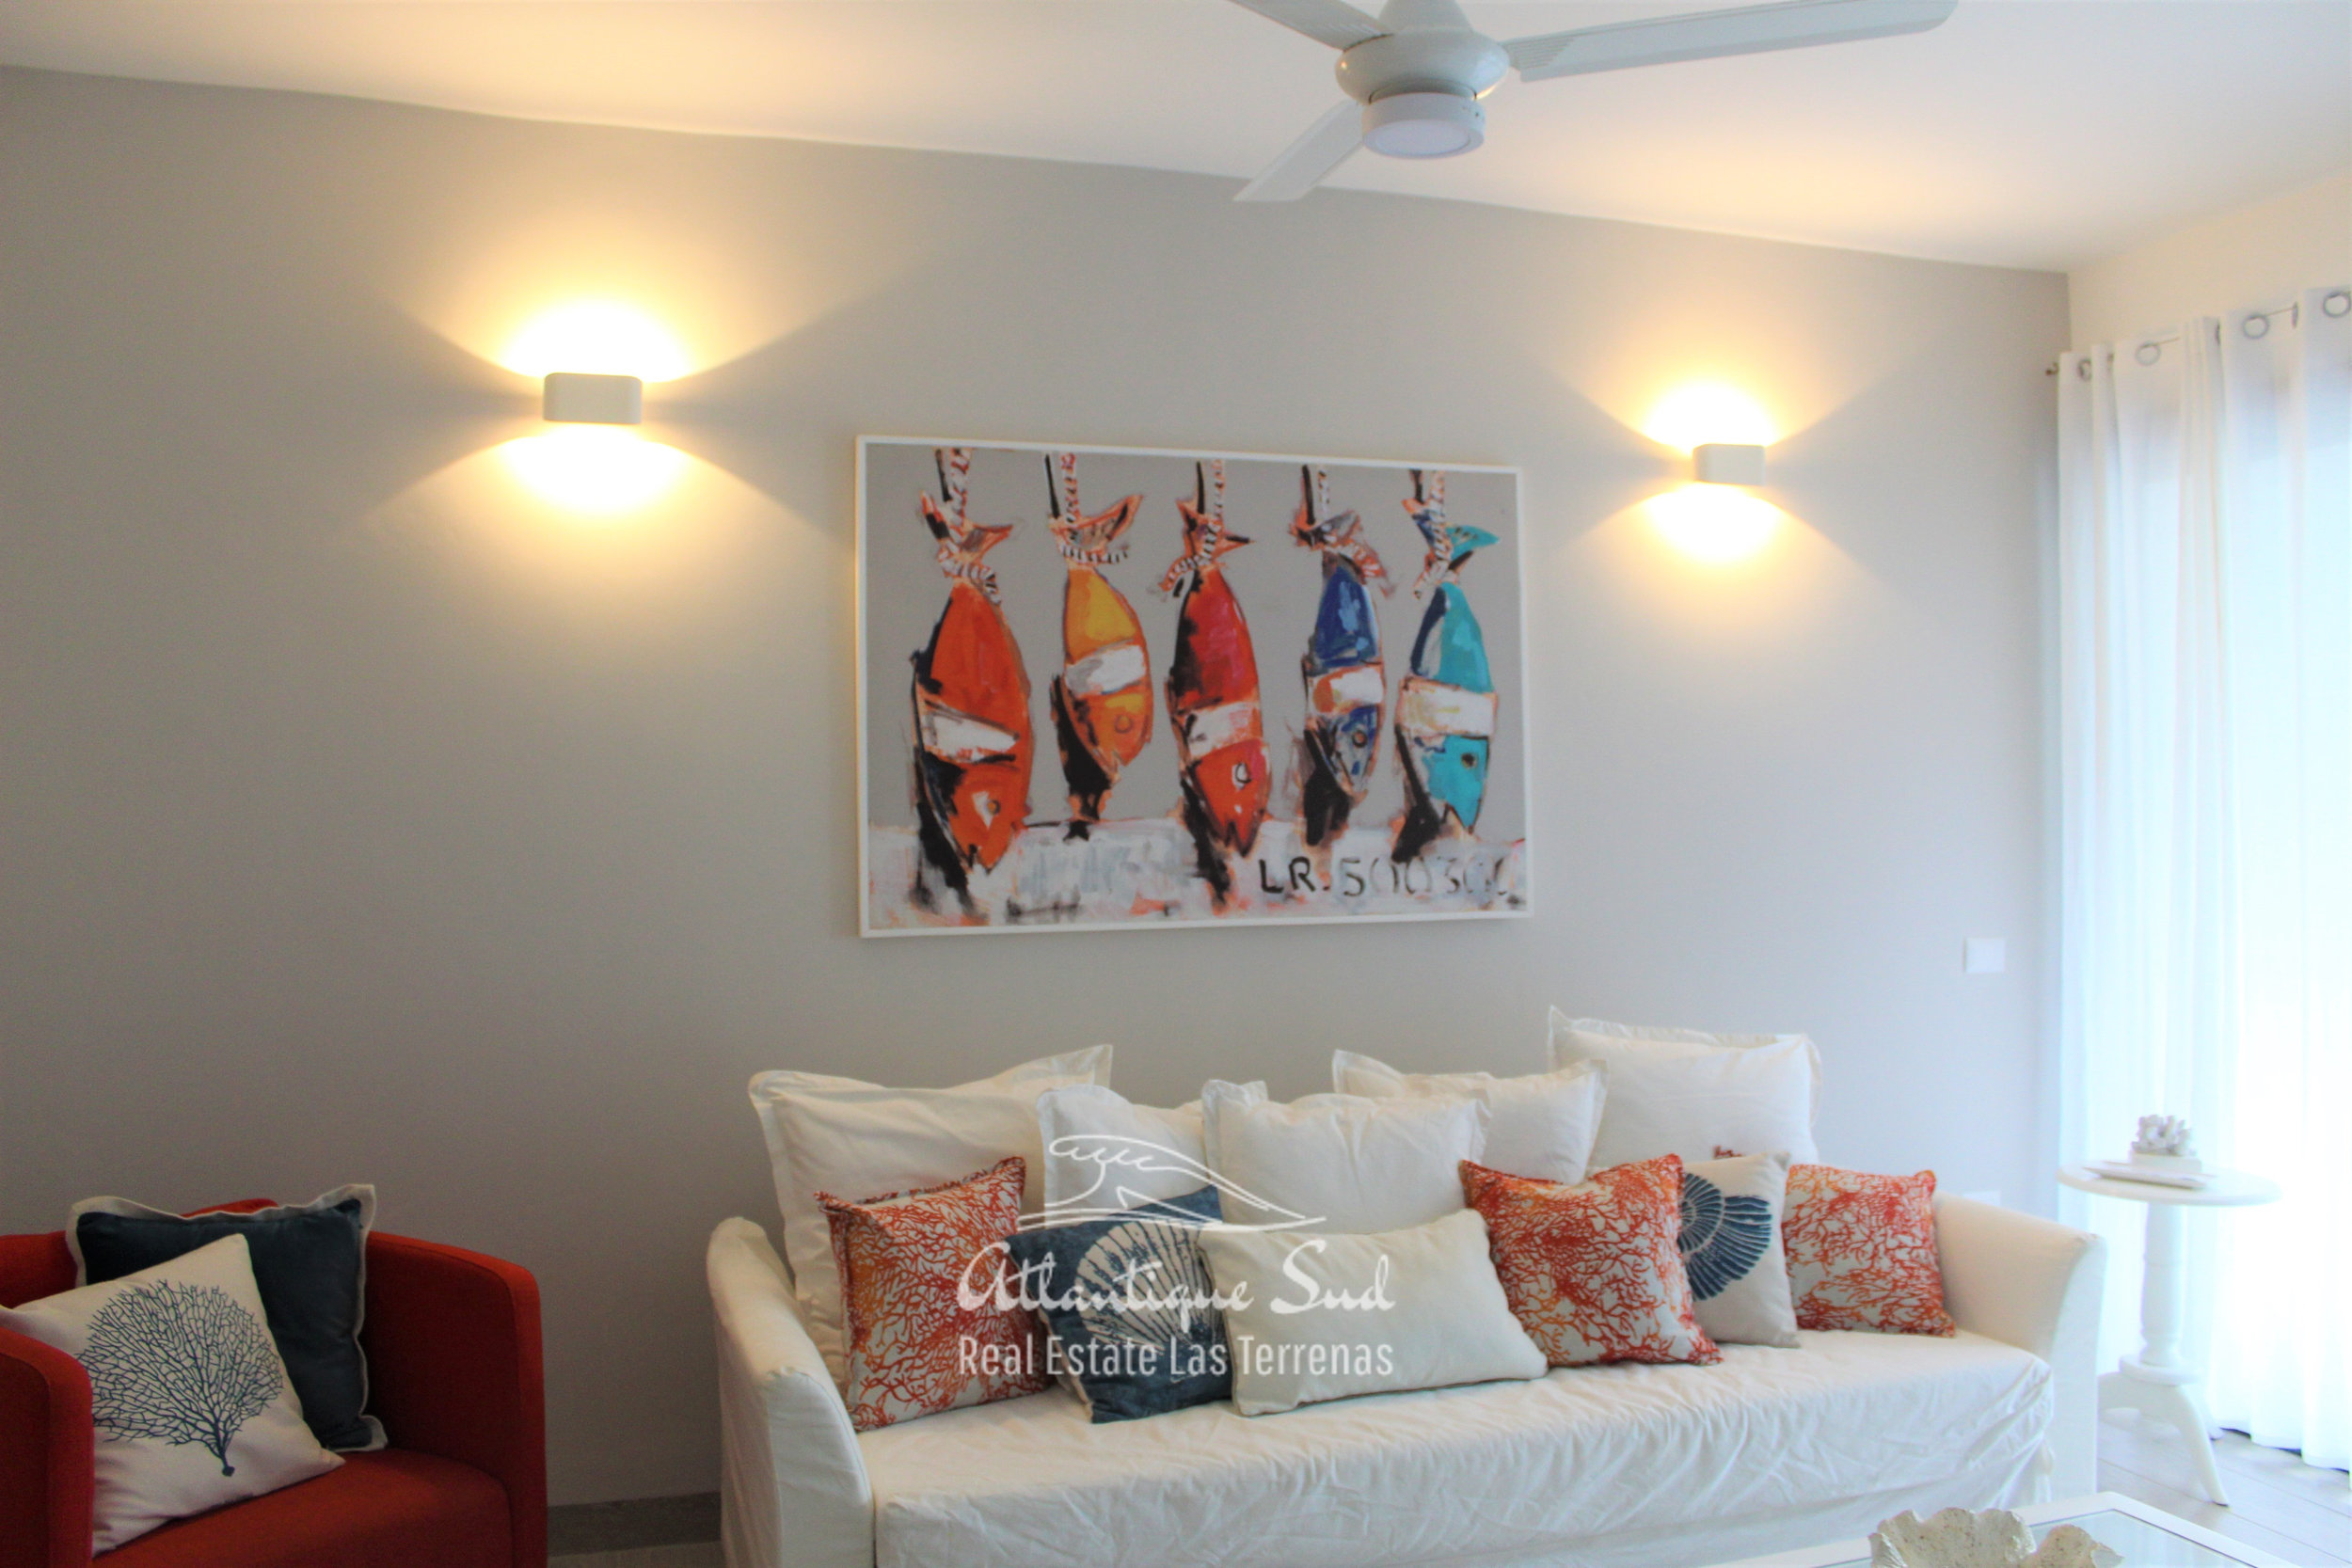 Cozy-1-bedroom-apartment-in-gated-community-close-to-the-center-of-lasterrenas7.jpg